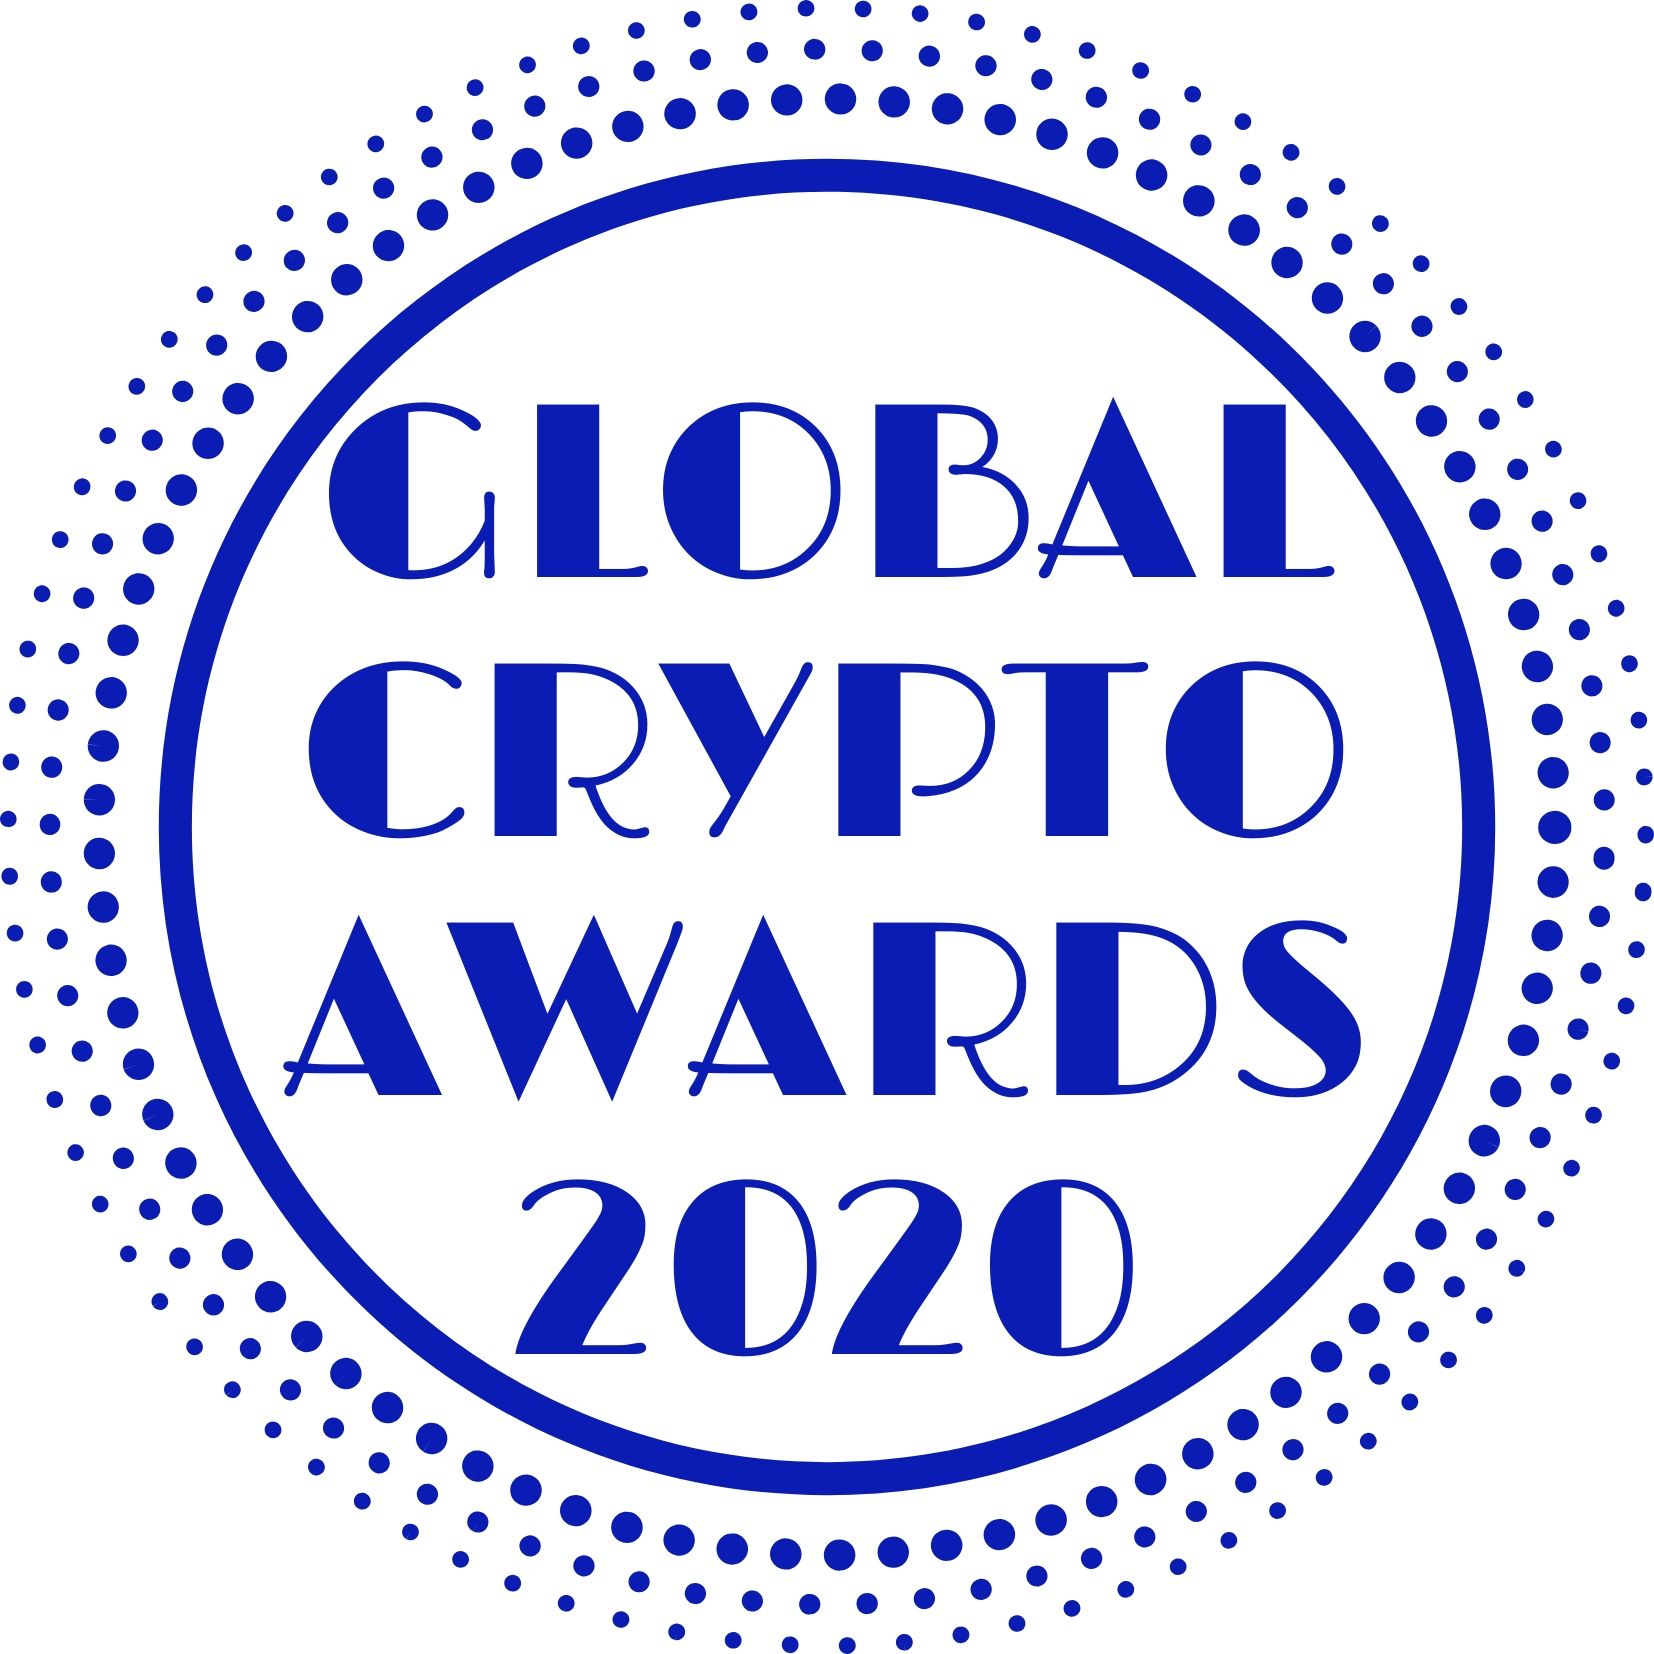 Global Crypto Awards blockchain jobs